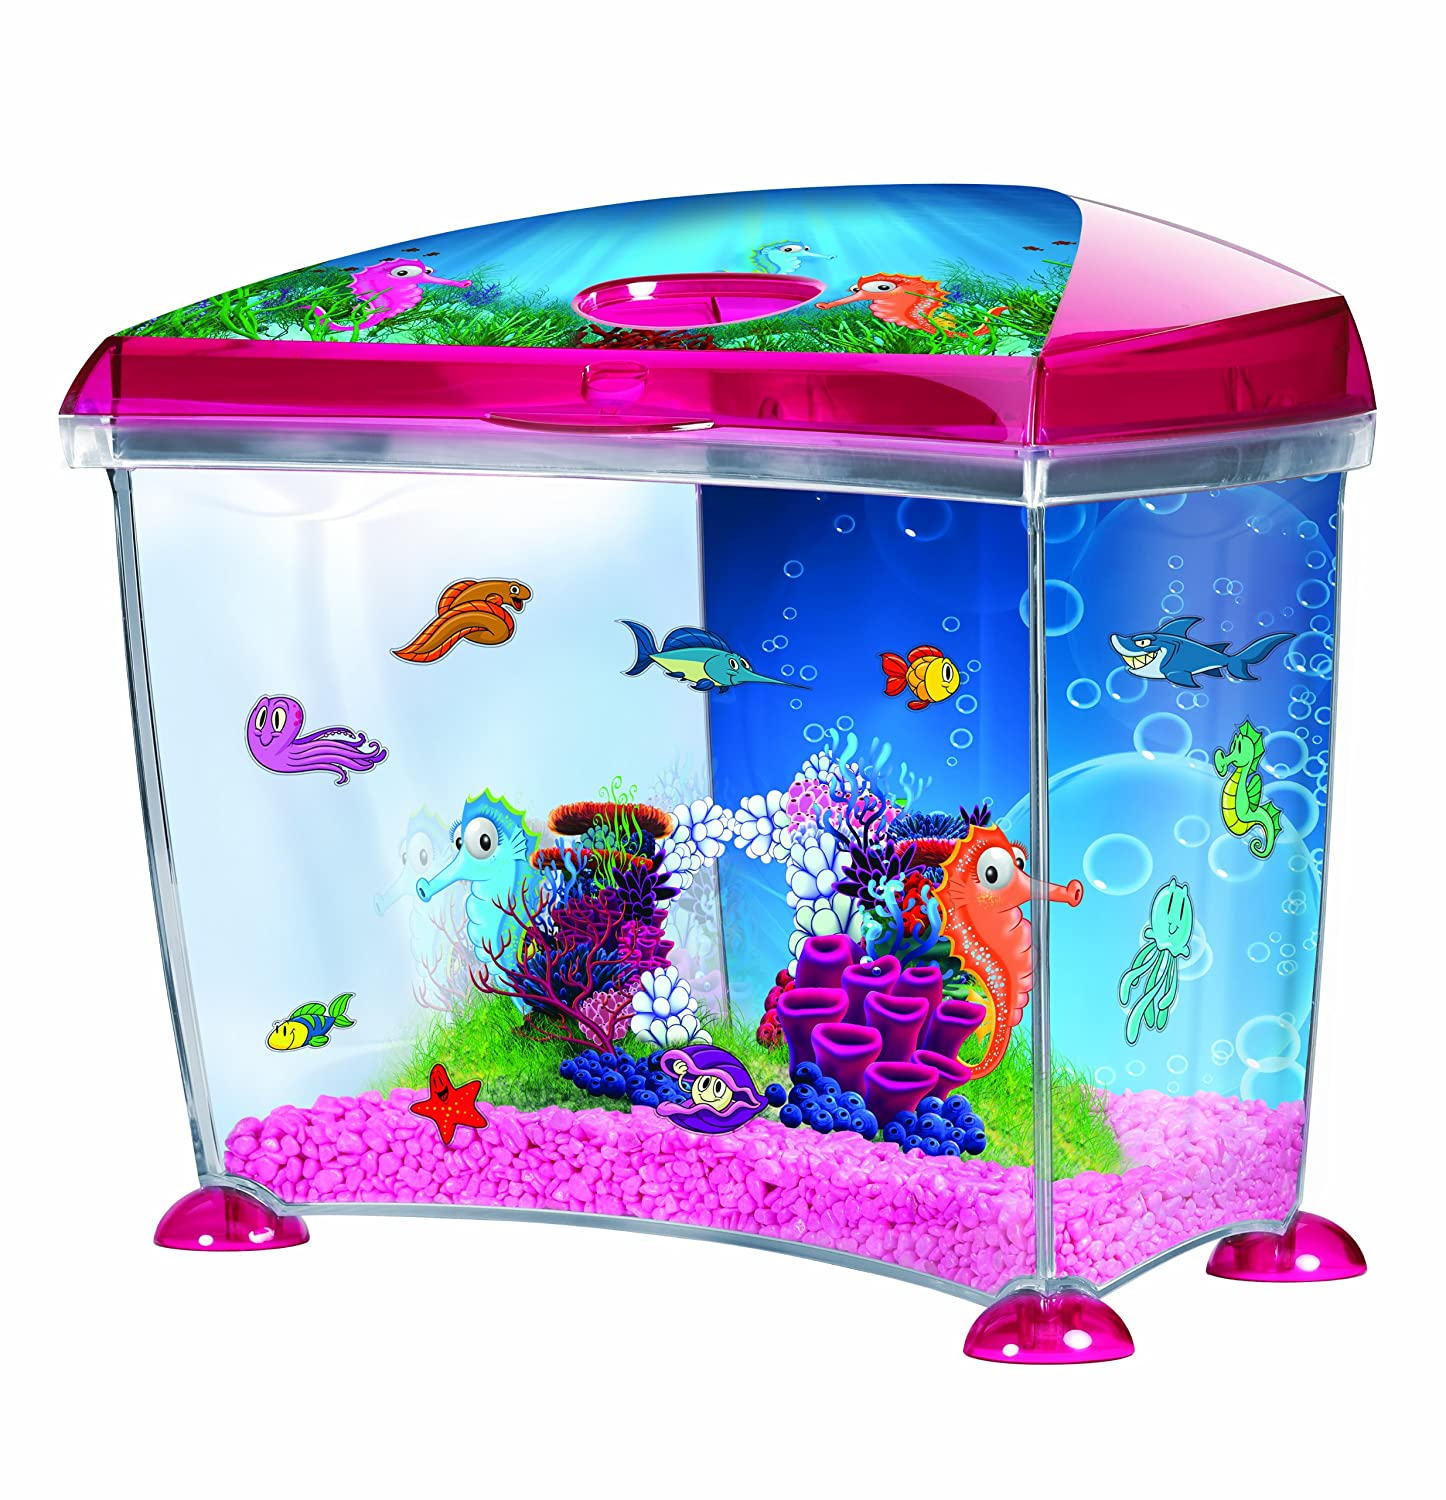 Pink fish tank aquarium with filter - Marina Seahorse Fantasy Plastic Aquarium Kit 14 Litre